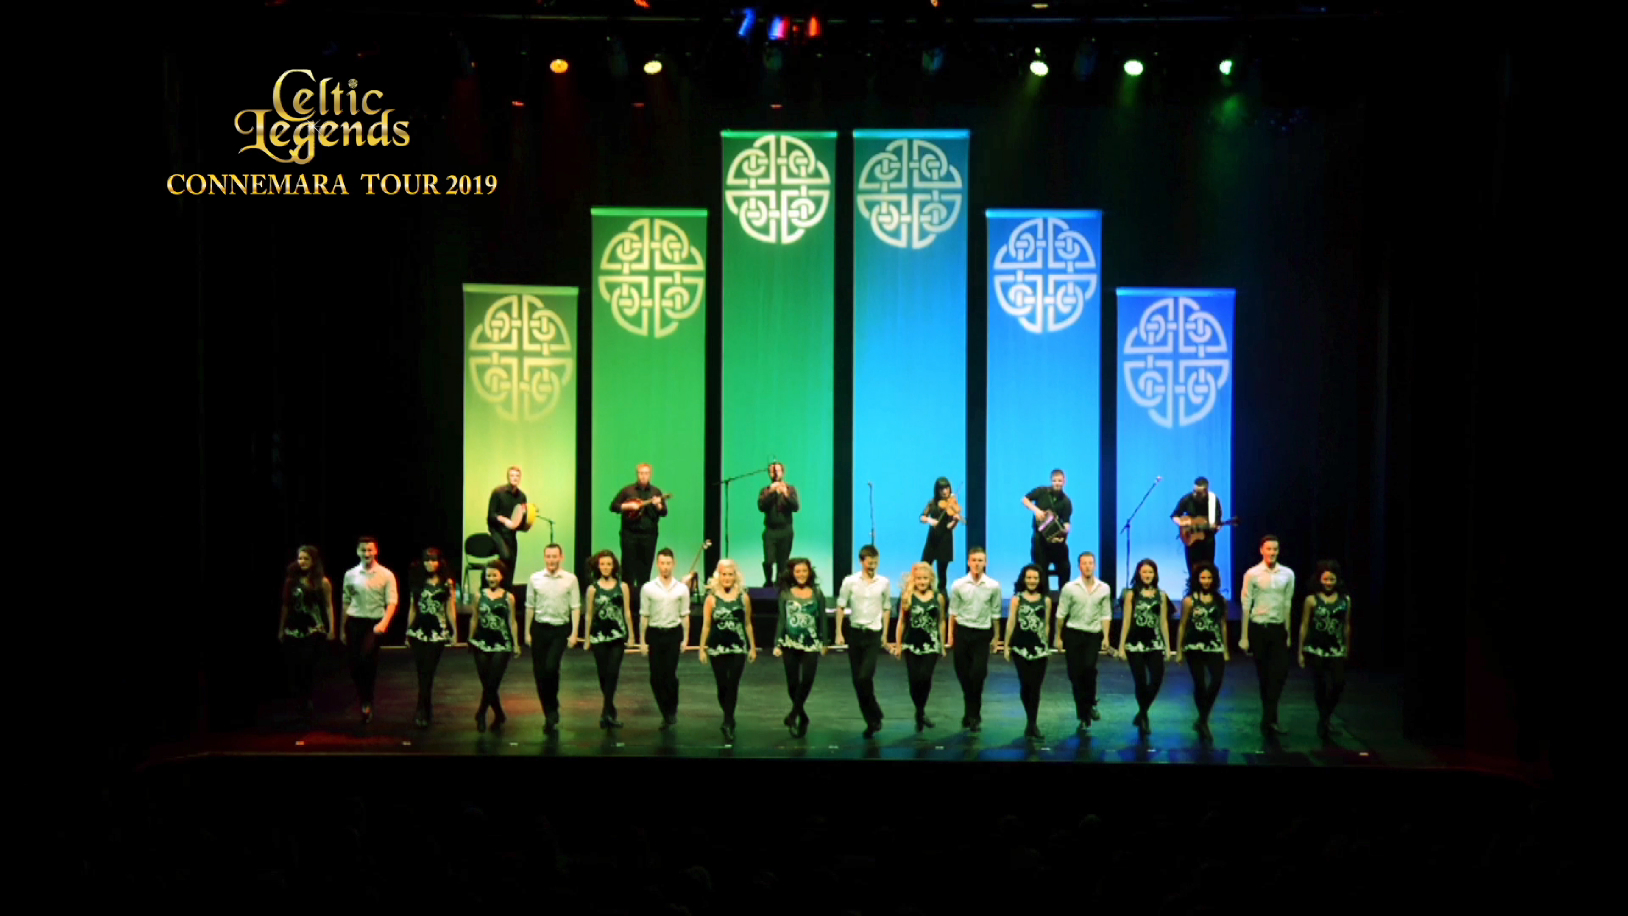 spot tv celtic legends spectacle danse ilrandaise captation multi cameras